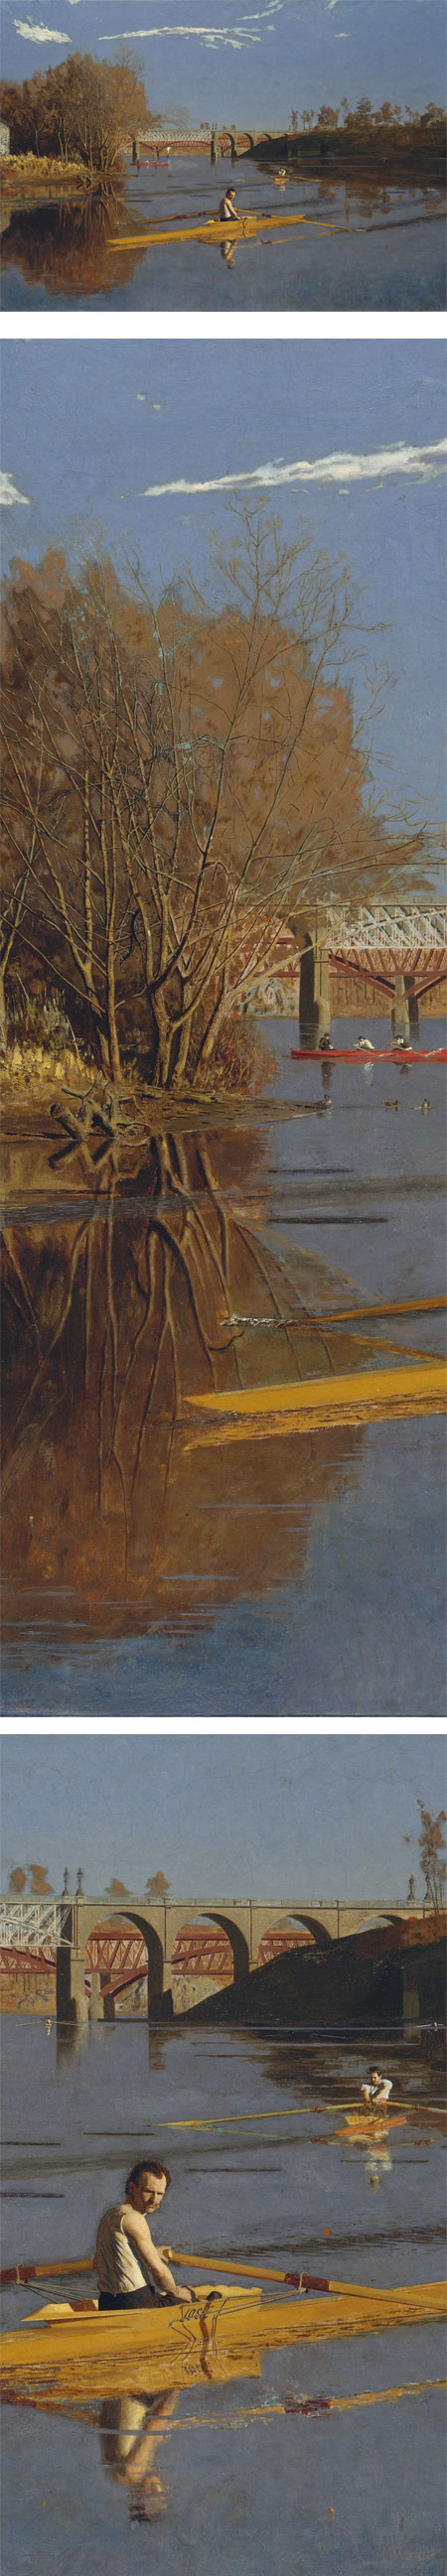 The Champion Single Sculls (Max Schmitt in a Single Scull), Thomas Eakins